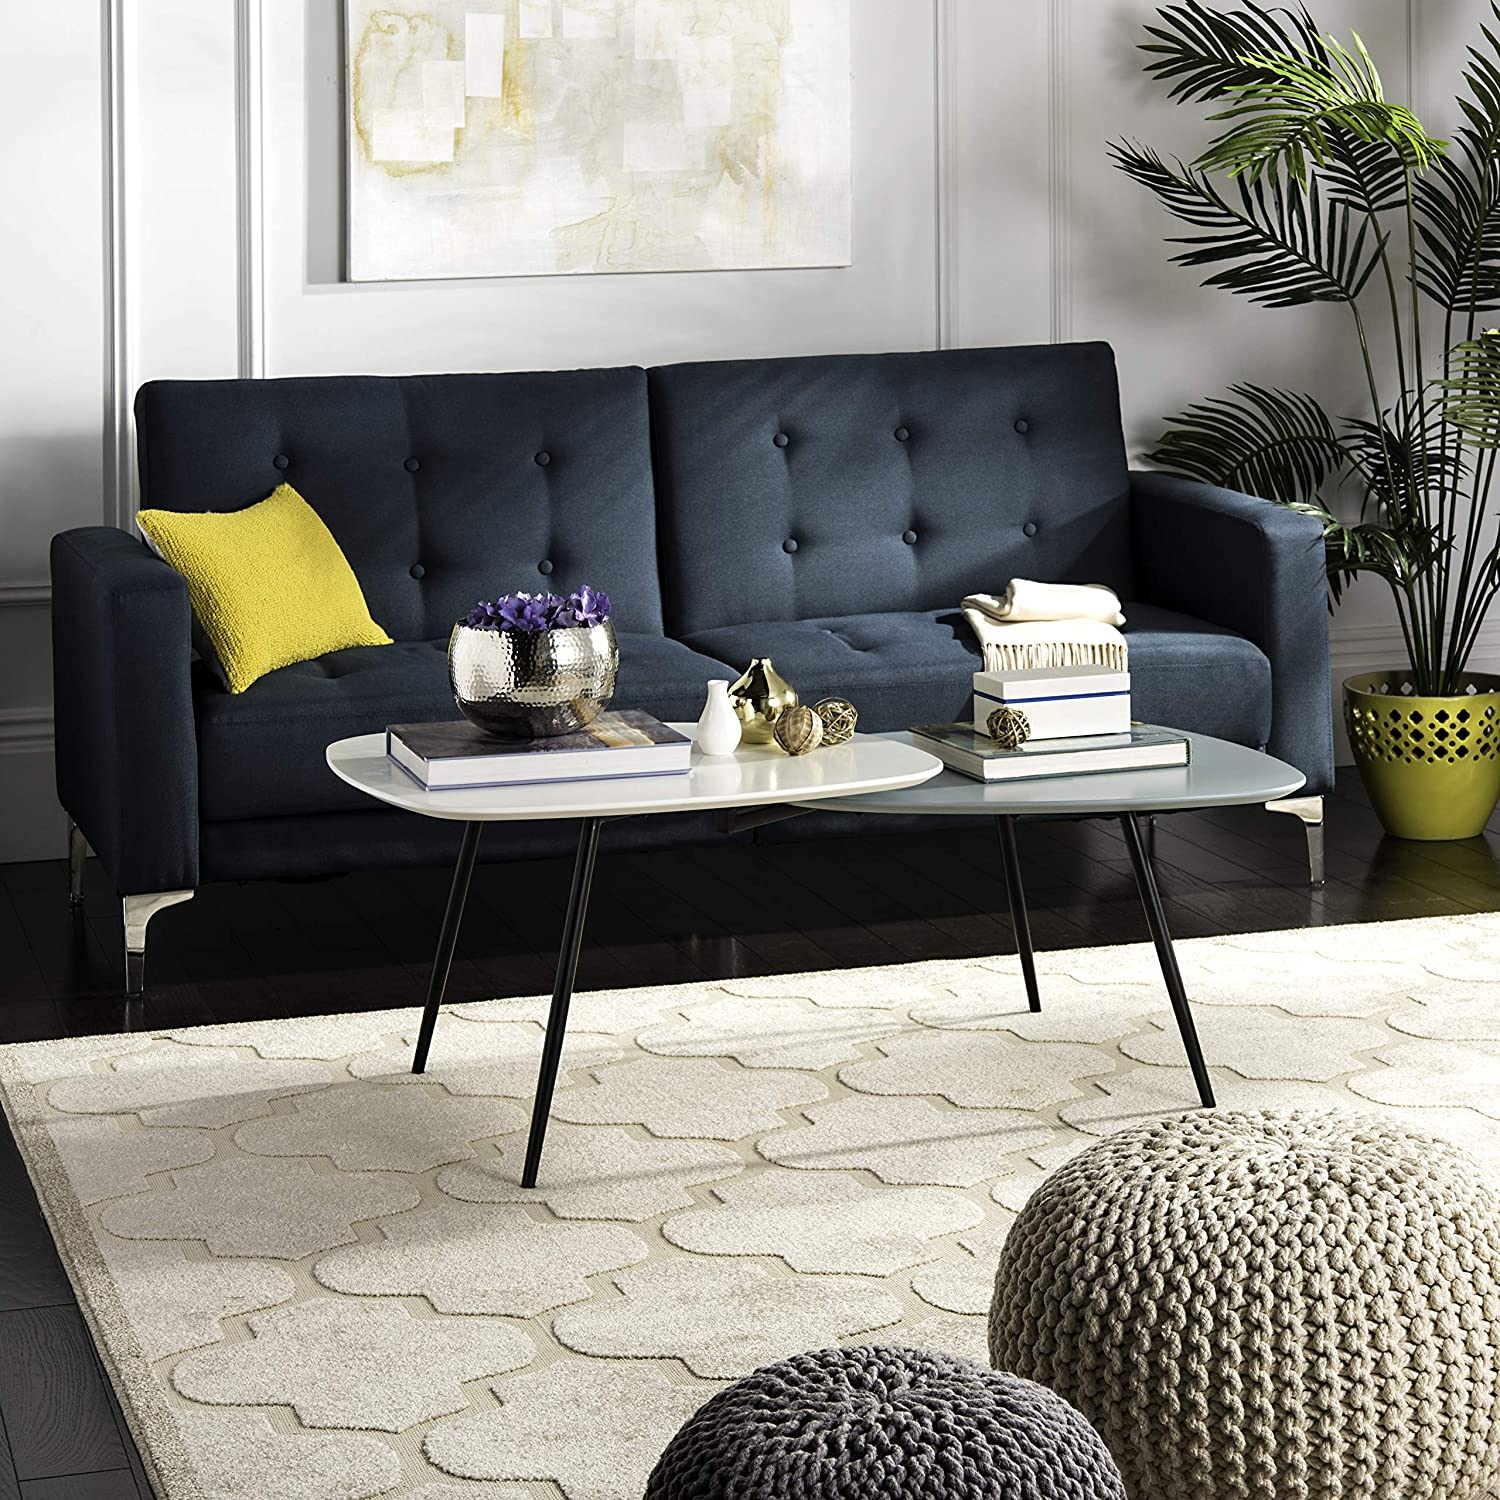 white-and-grey-coffee-table-unique-tabletop-shape-dual-height-layered-design-tapered-black-legs-retro-living-room-furniture